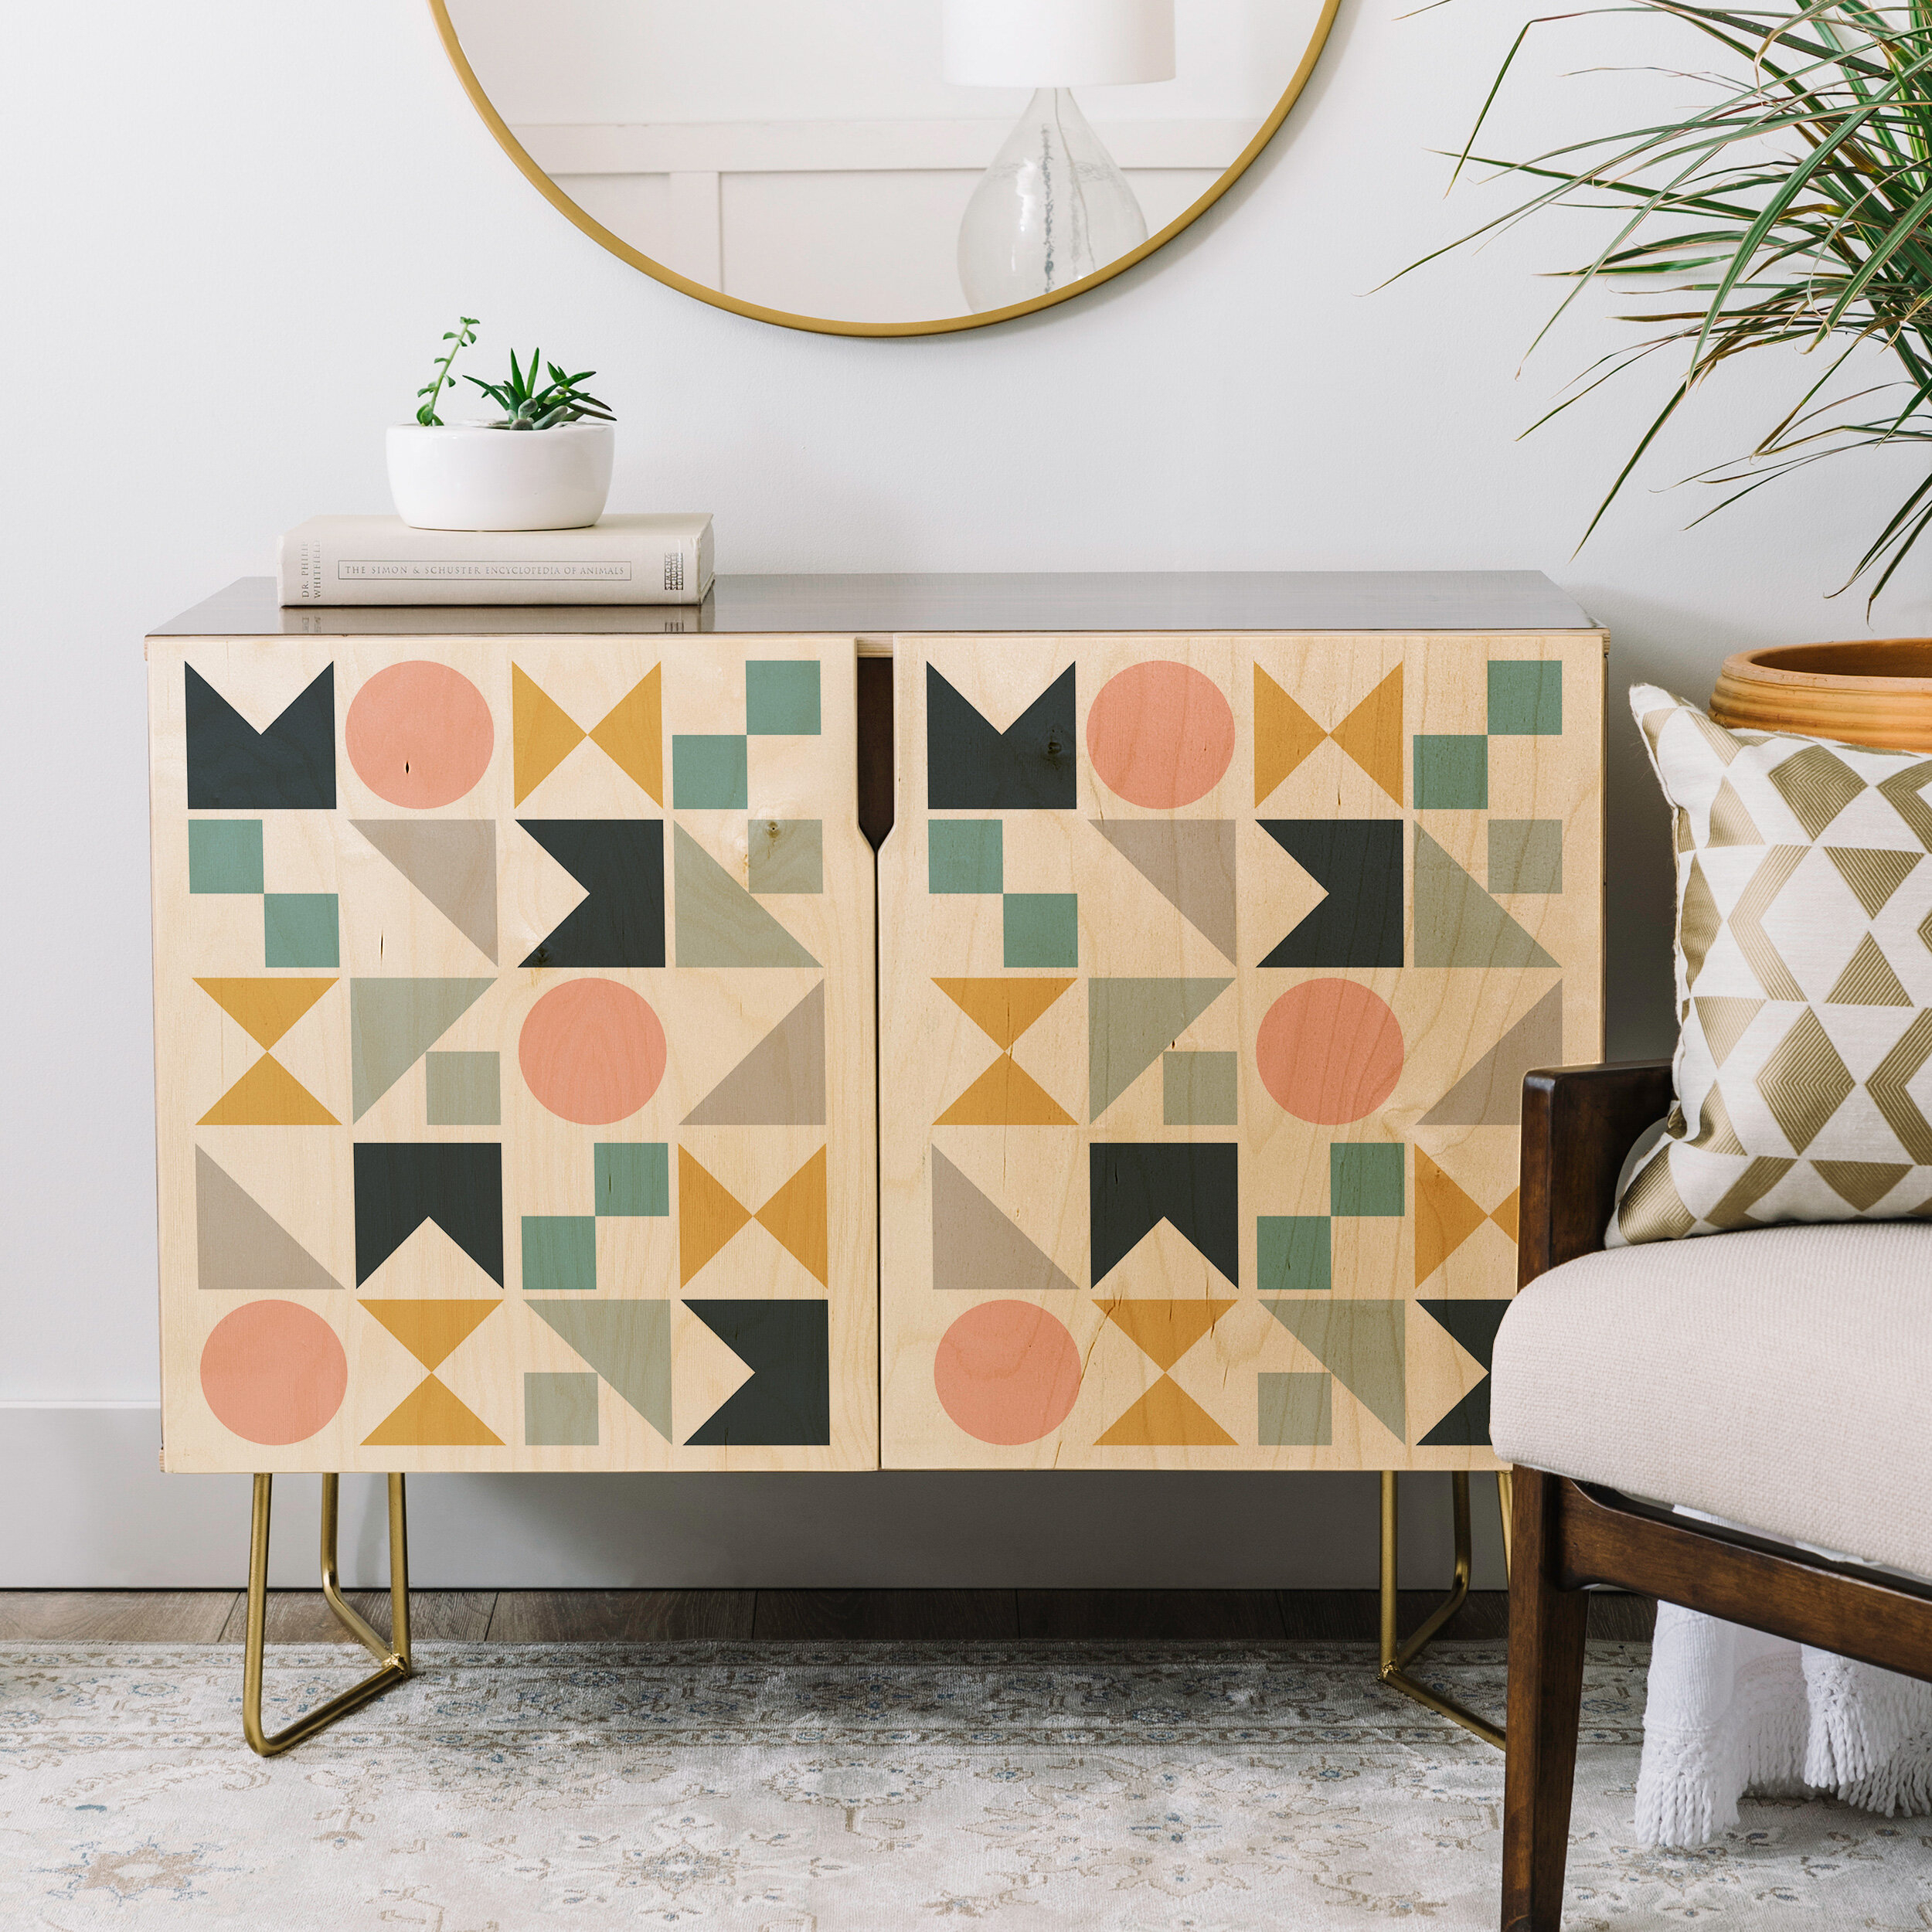 The Old Art Studio Modern Geometric Credenza pertaining to Multi Colored Geometric Shapes Credenzas (Image 29 of 30)